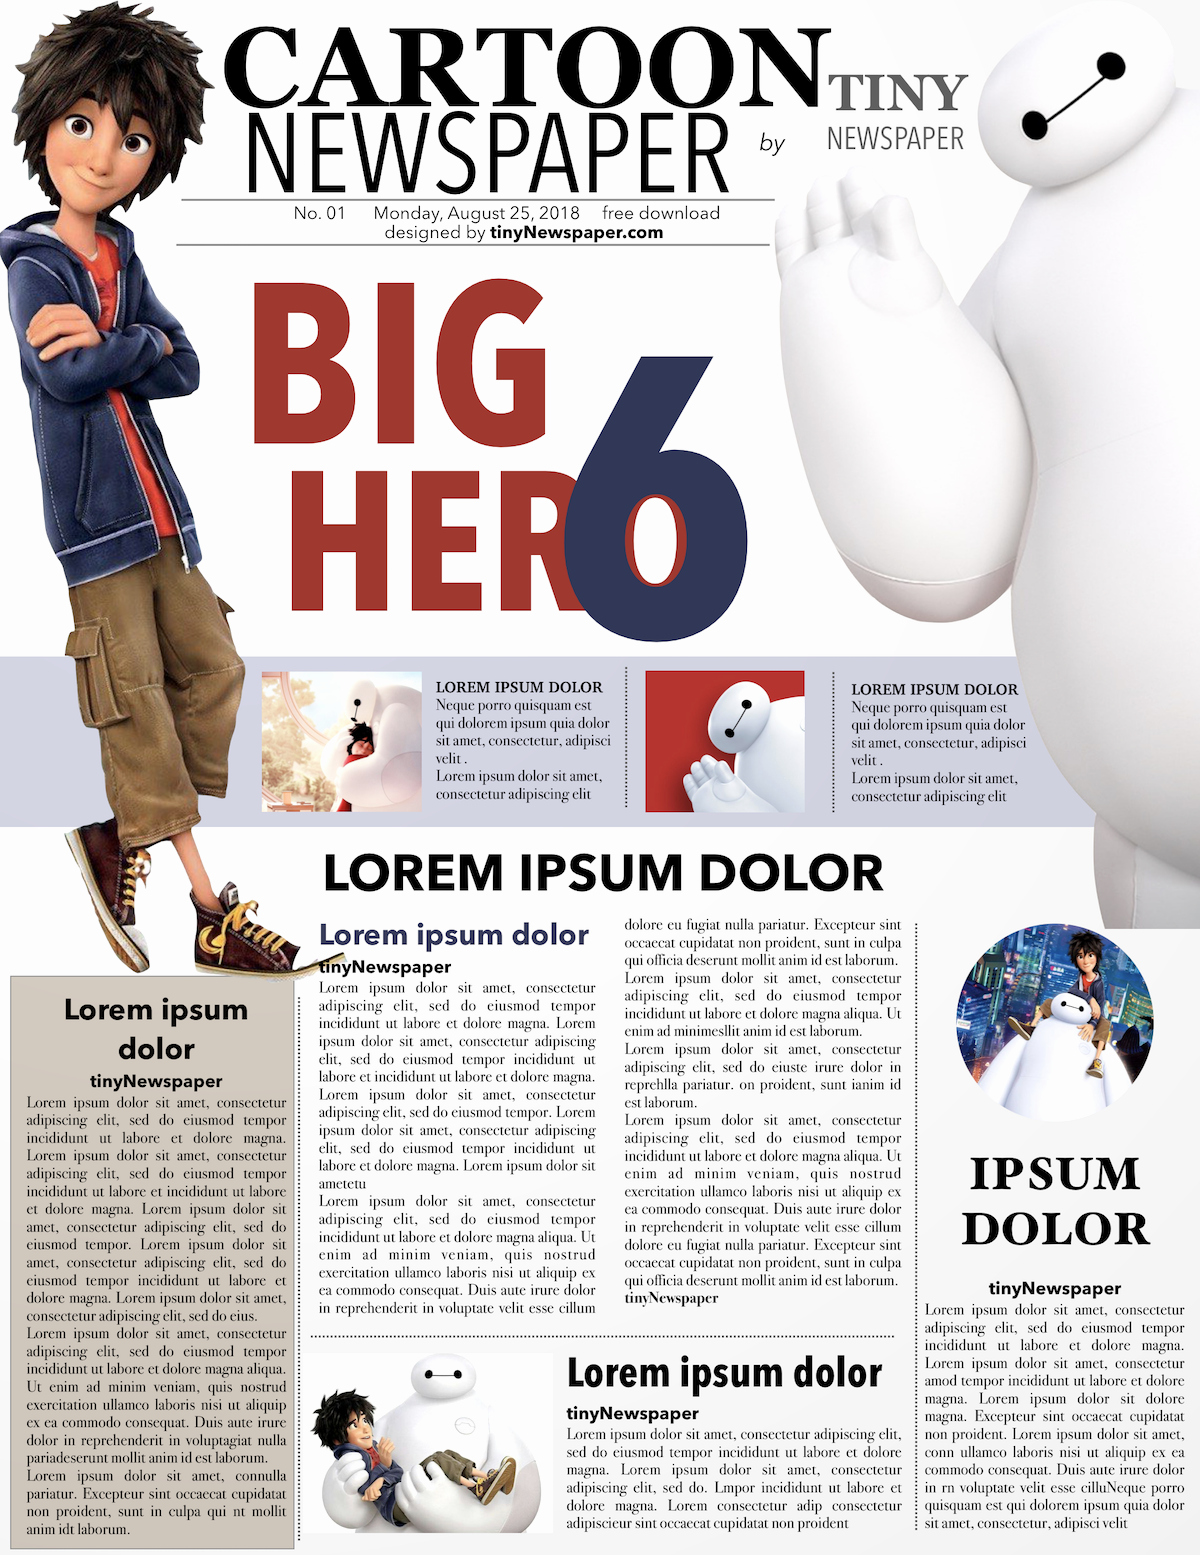 Free Newspaper Template for Word Inspirational Newspaper Template for Google Docs Tiny Newspaper